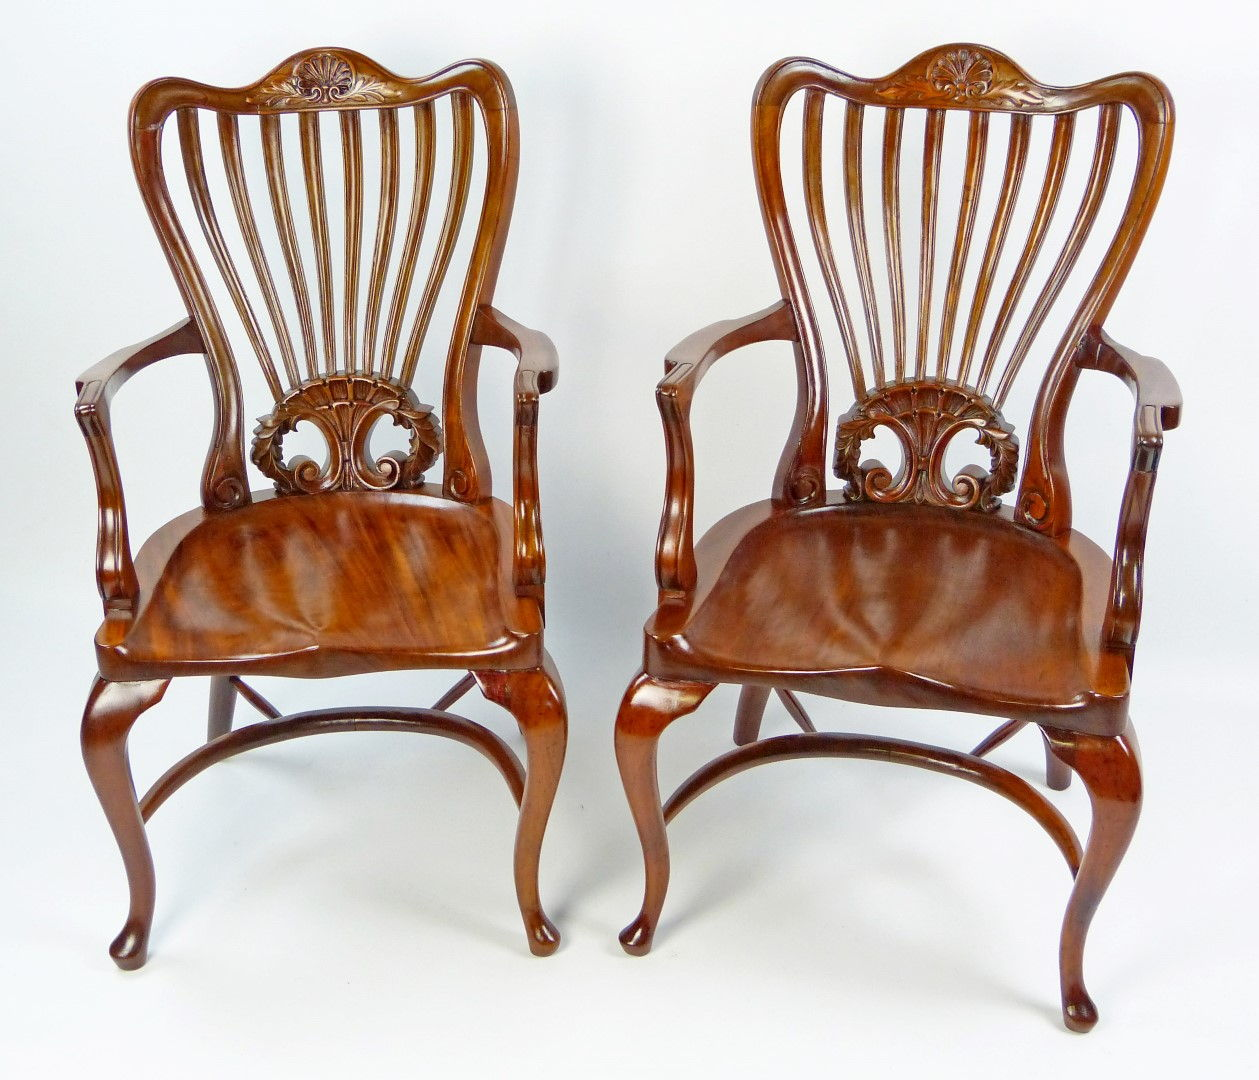 Antique Armchairs   Carved Cherrywood   SOLD